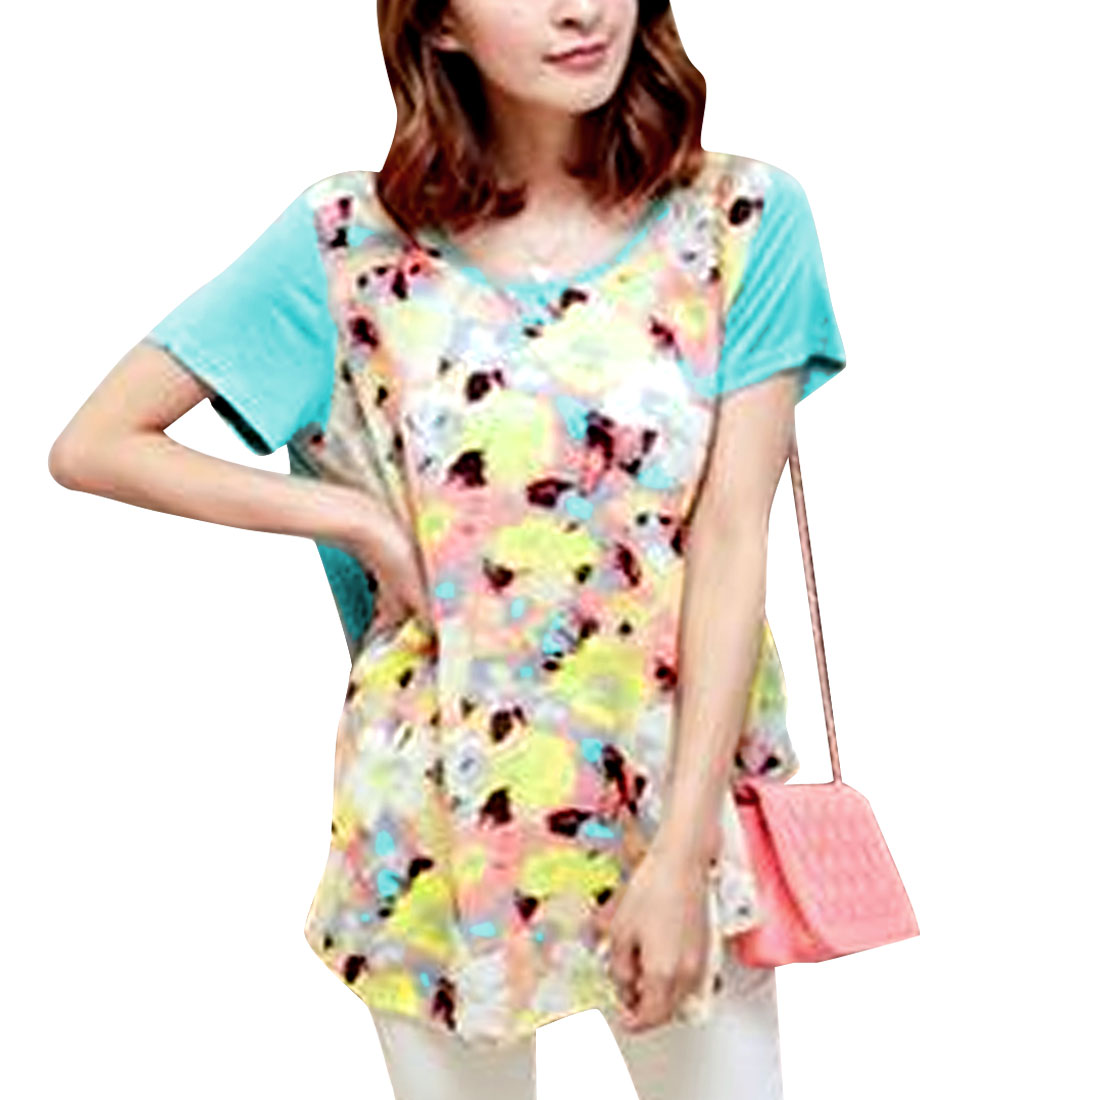 Ladies Irregular Hem Short Sleeve Round Neck Tunic Shirt Pale Blue S